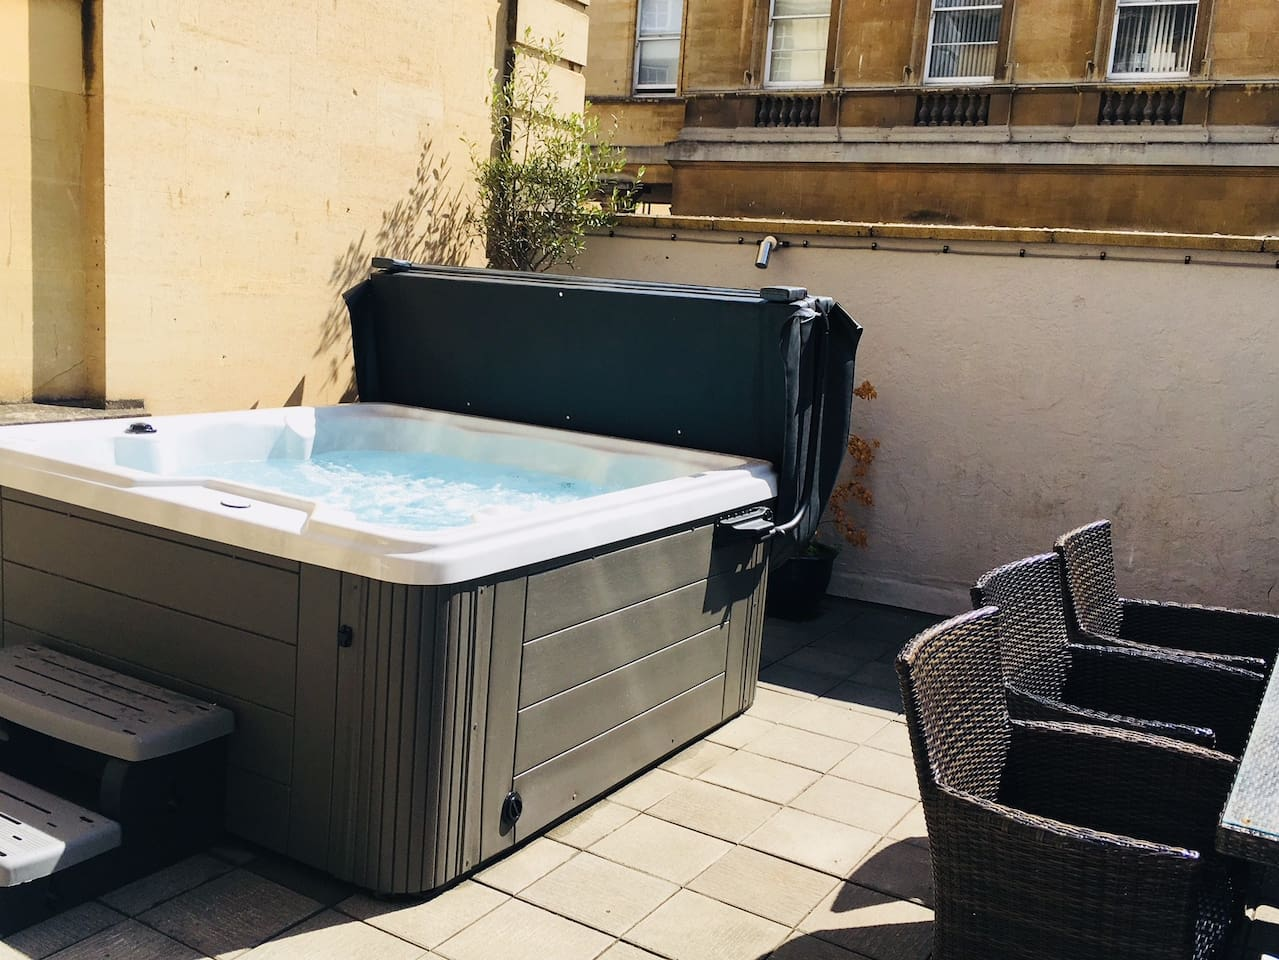 Our outdoor hot tub on our Private courtyard, ready for exclusive use.